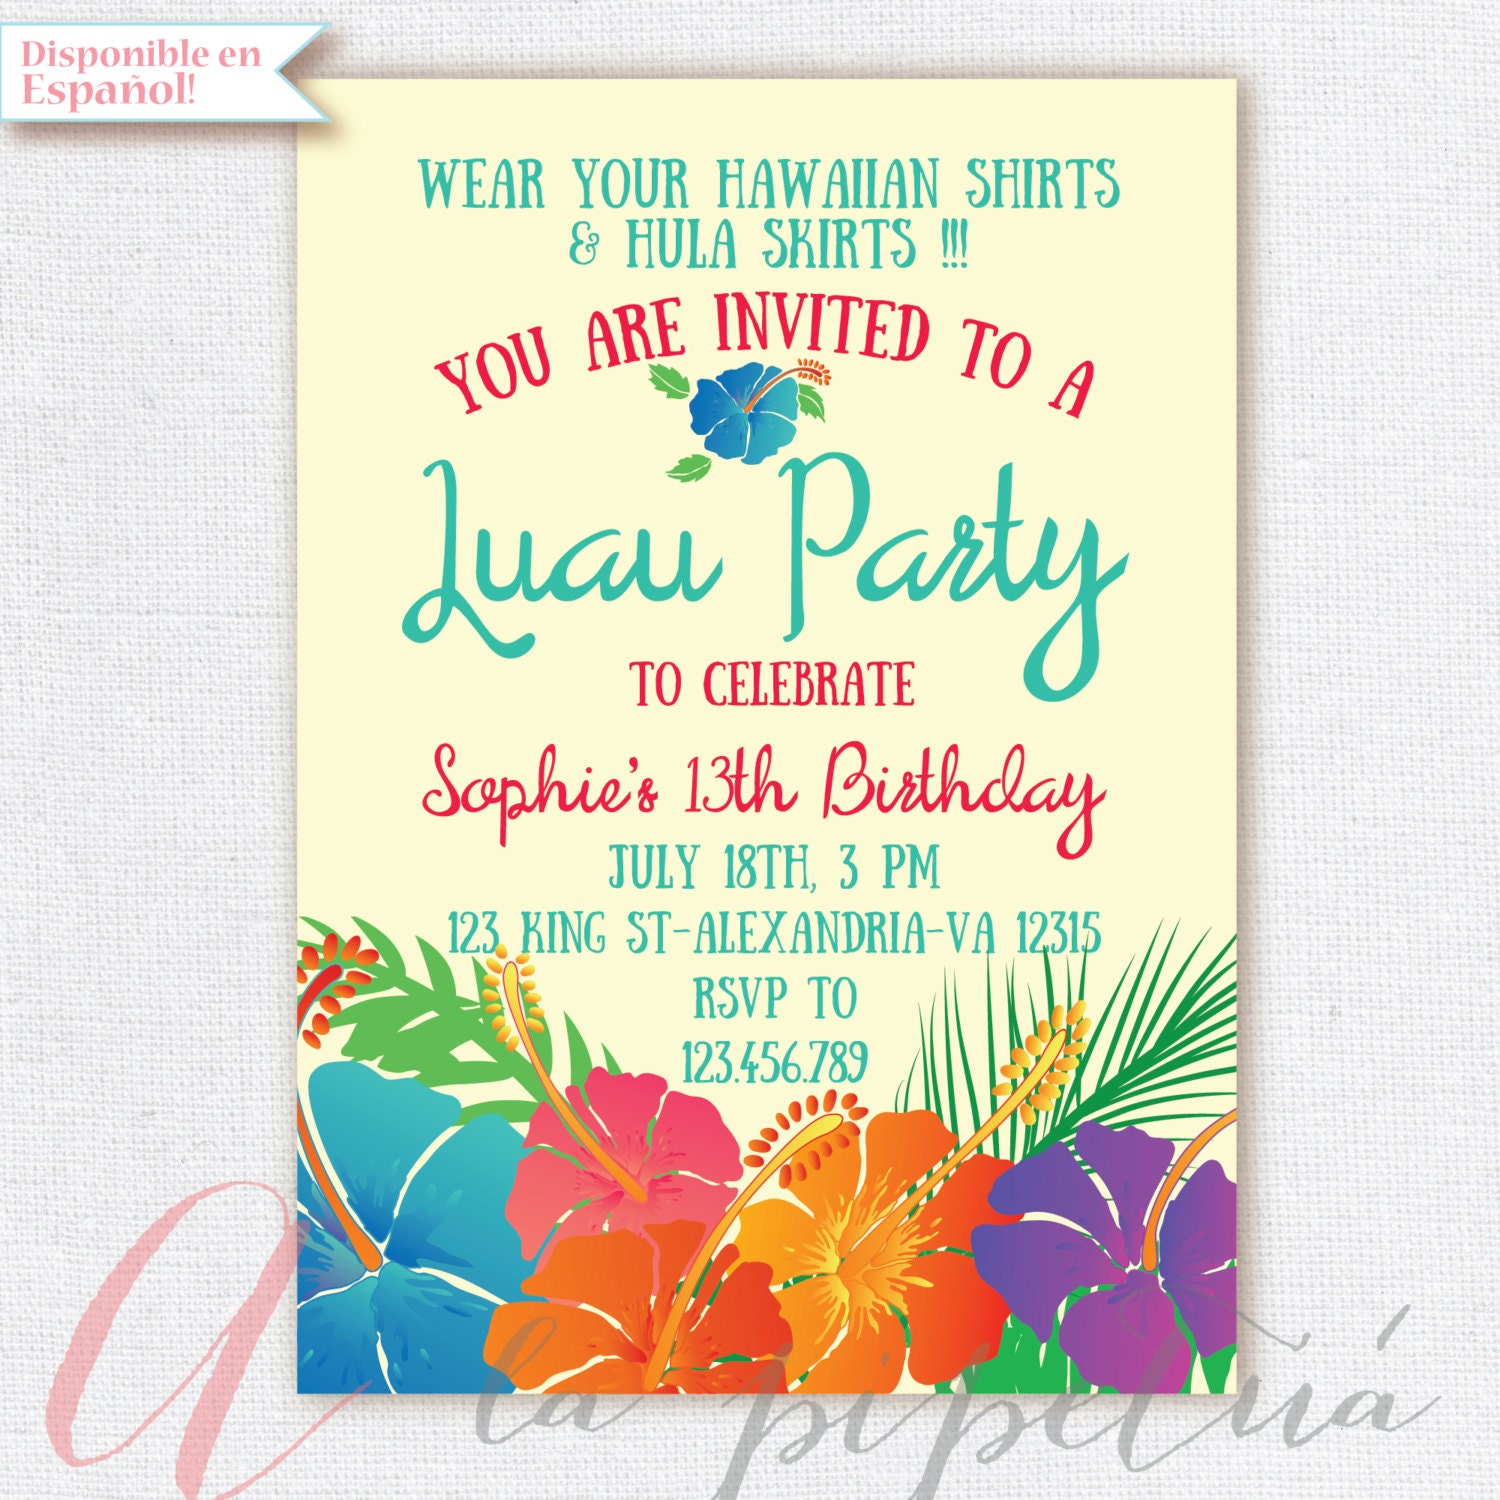 Luau invitation birthday party hawaiian party invitation zoom stopboris Gallery